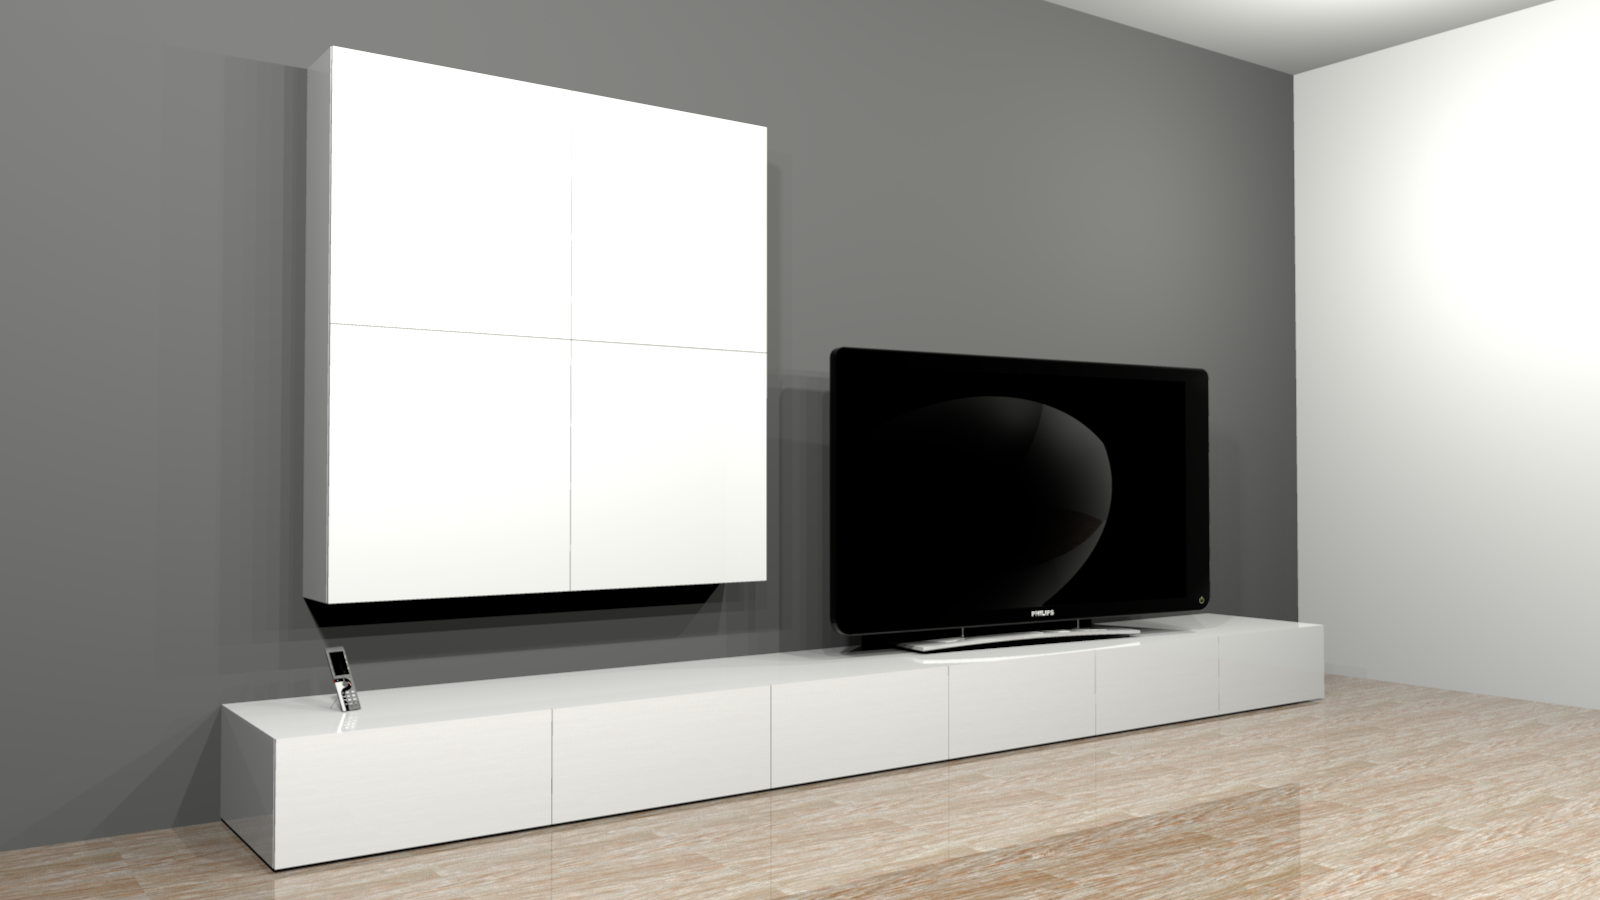 projet de cr ation de mobilier contemporain banc tv. Black Bedroom Furniture Sets. Home Design Ideas